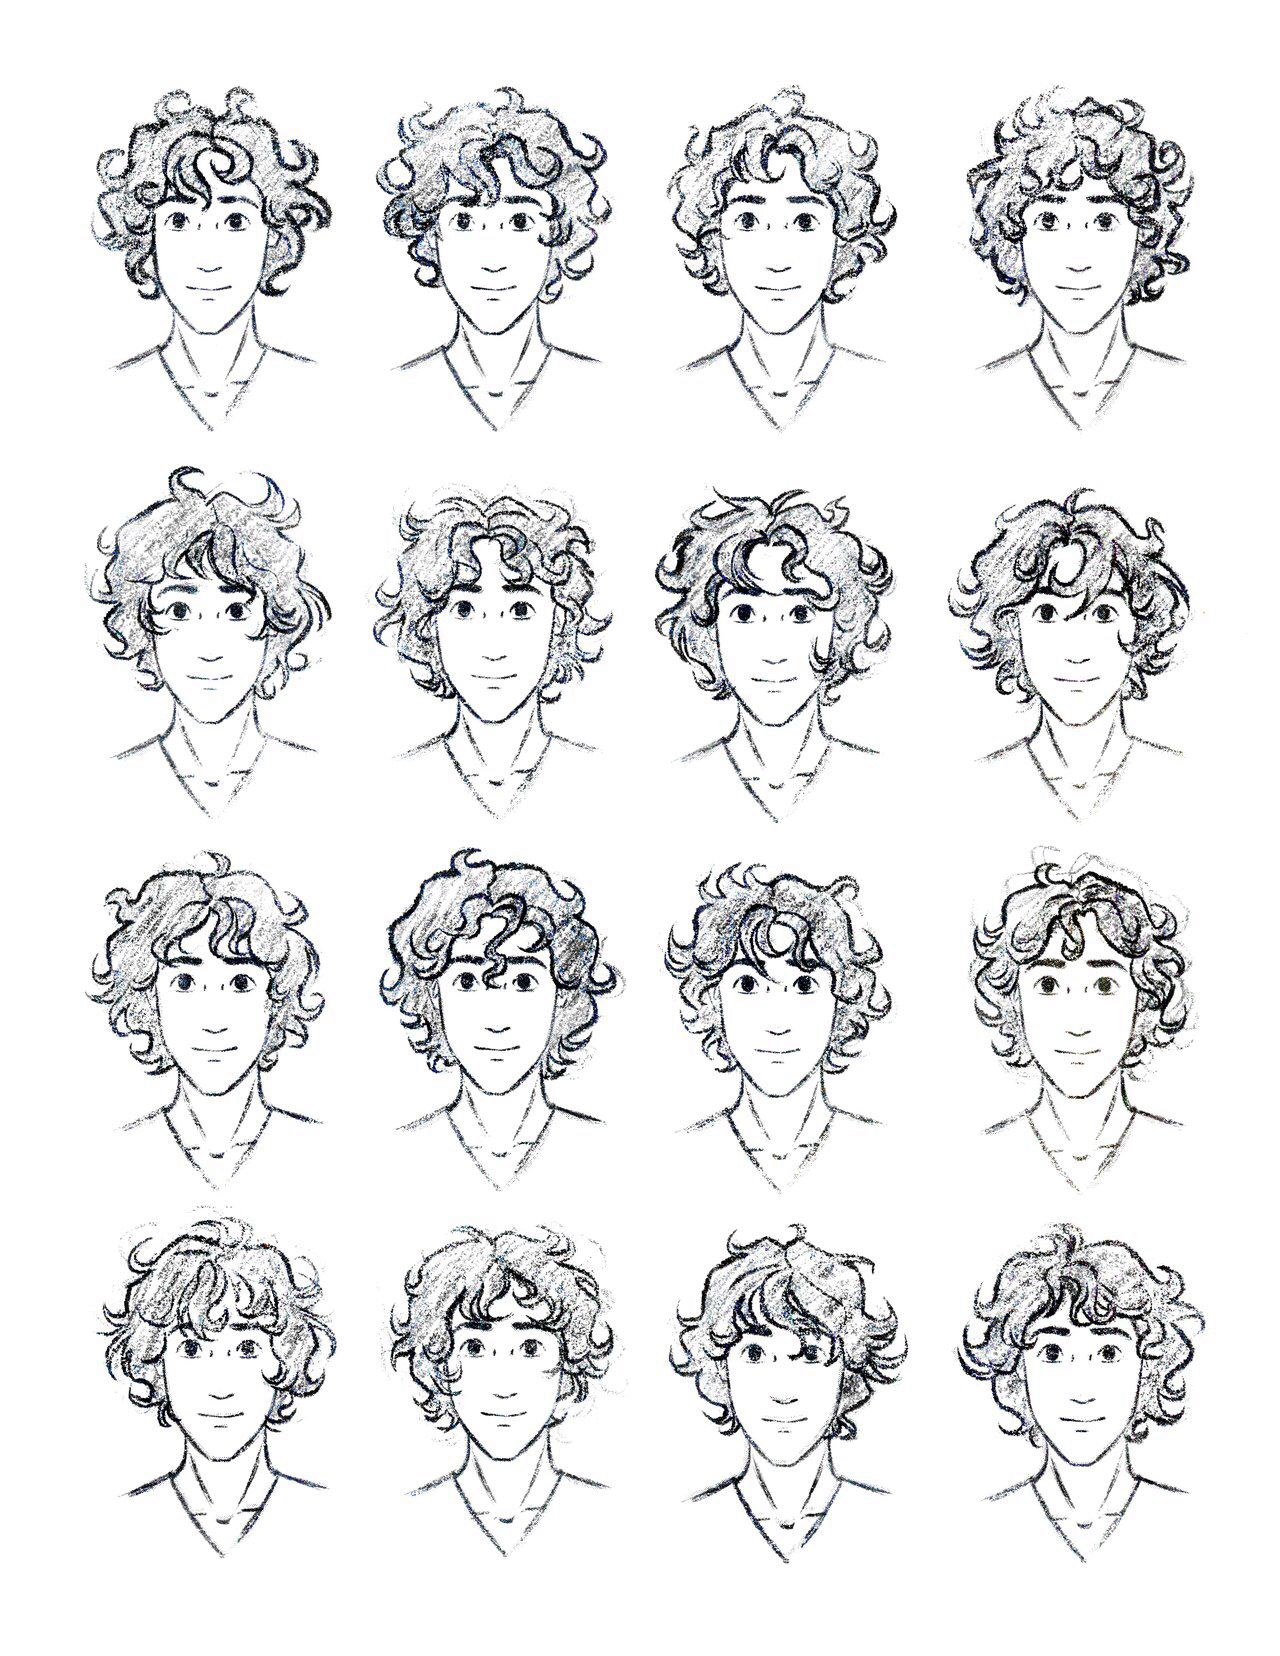 17 Best Images About Hair On Pinterest  Hair Type, Hair Reference And  Curly Hair